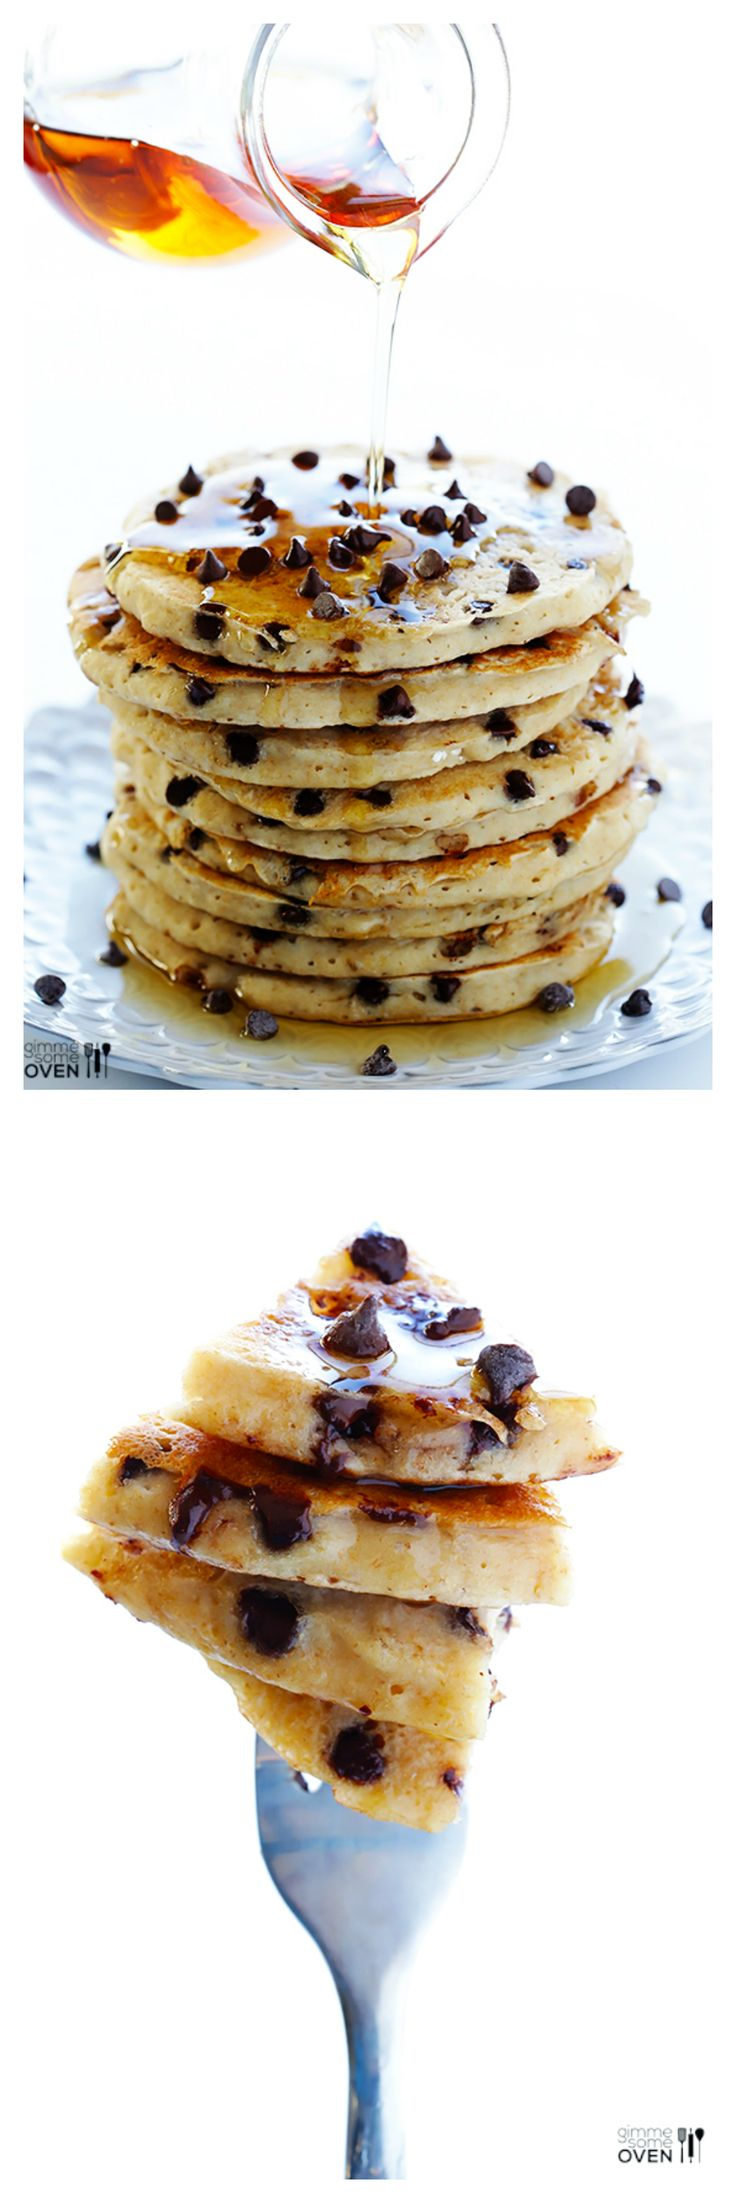 Guiltless Chocolate Chip Pancakes ~ made with simple, delicious ingredients and ready to go in 20 minutes! | gimmesomeoven.com